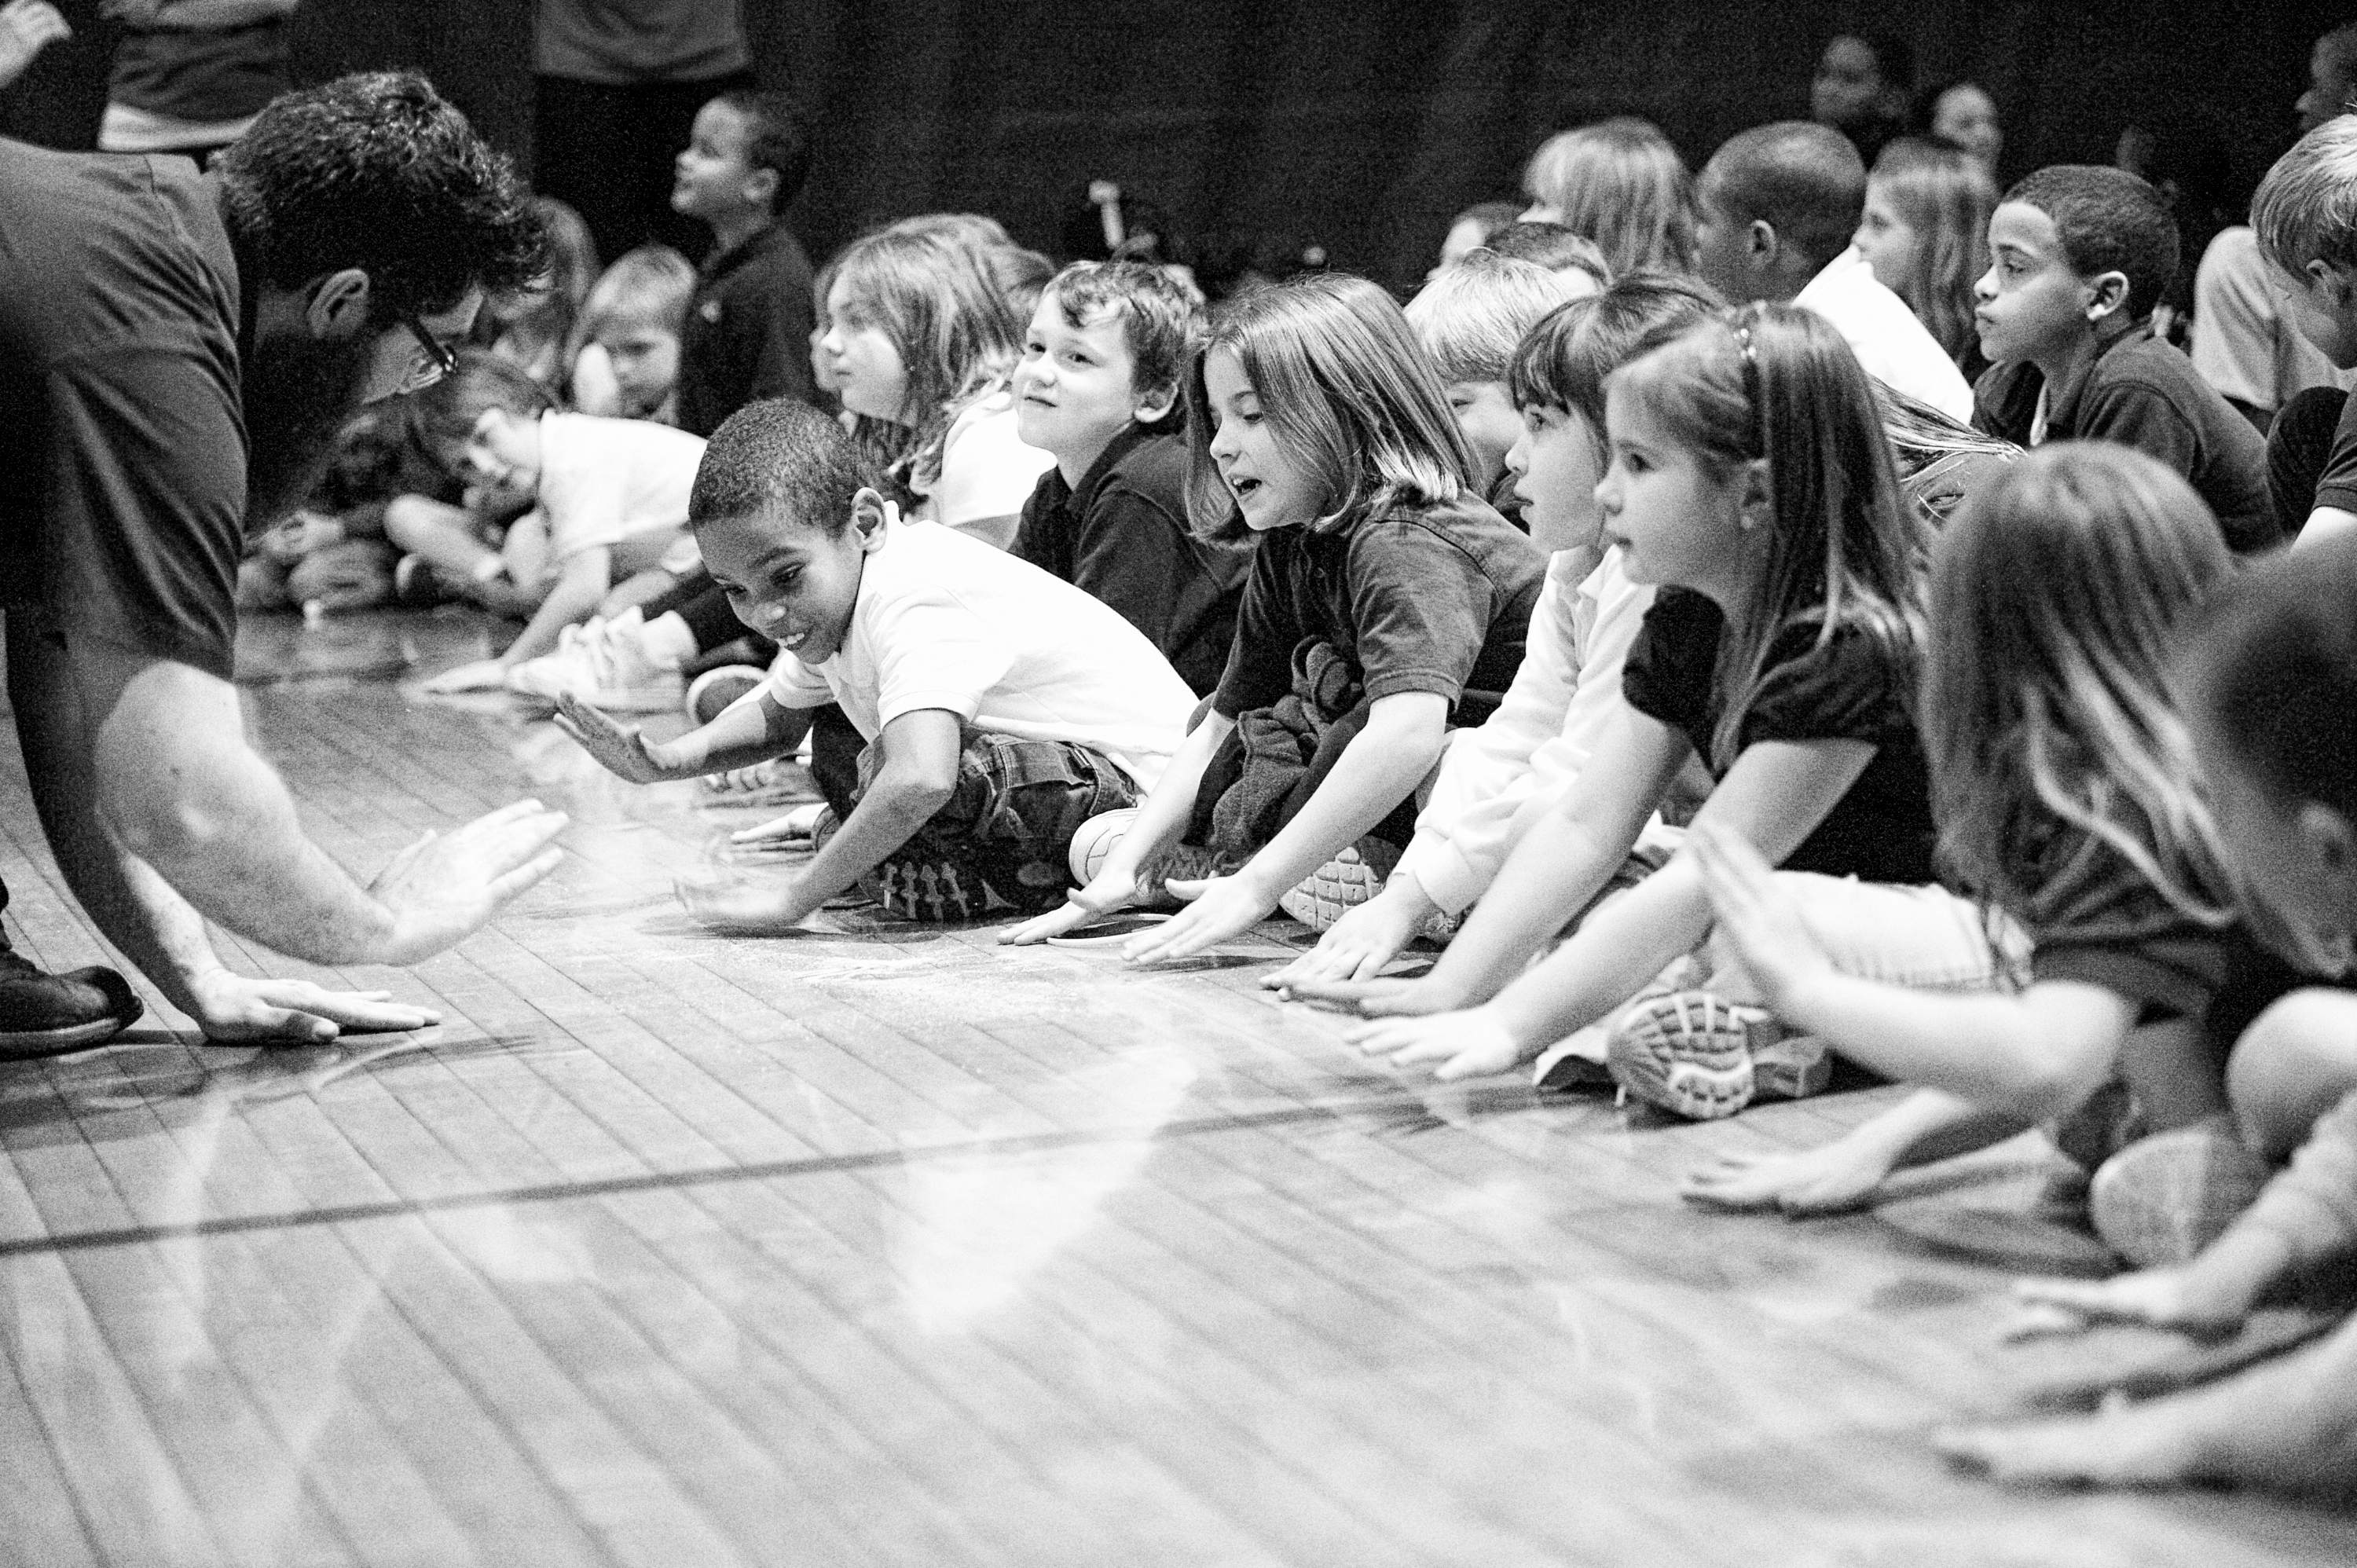 Children using their hands on a gym floor to make percussion sounds